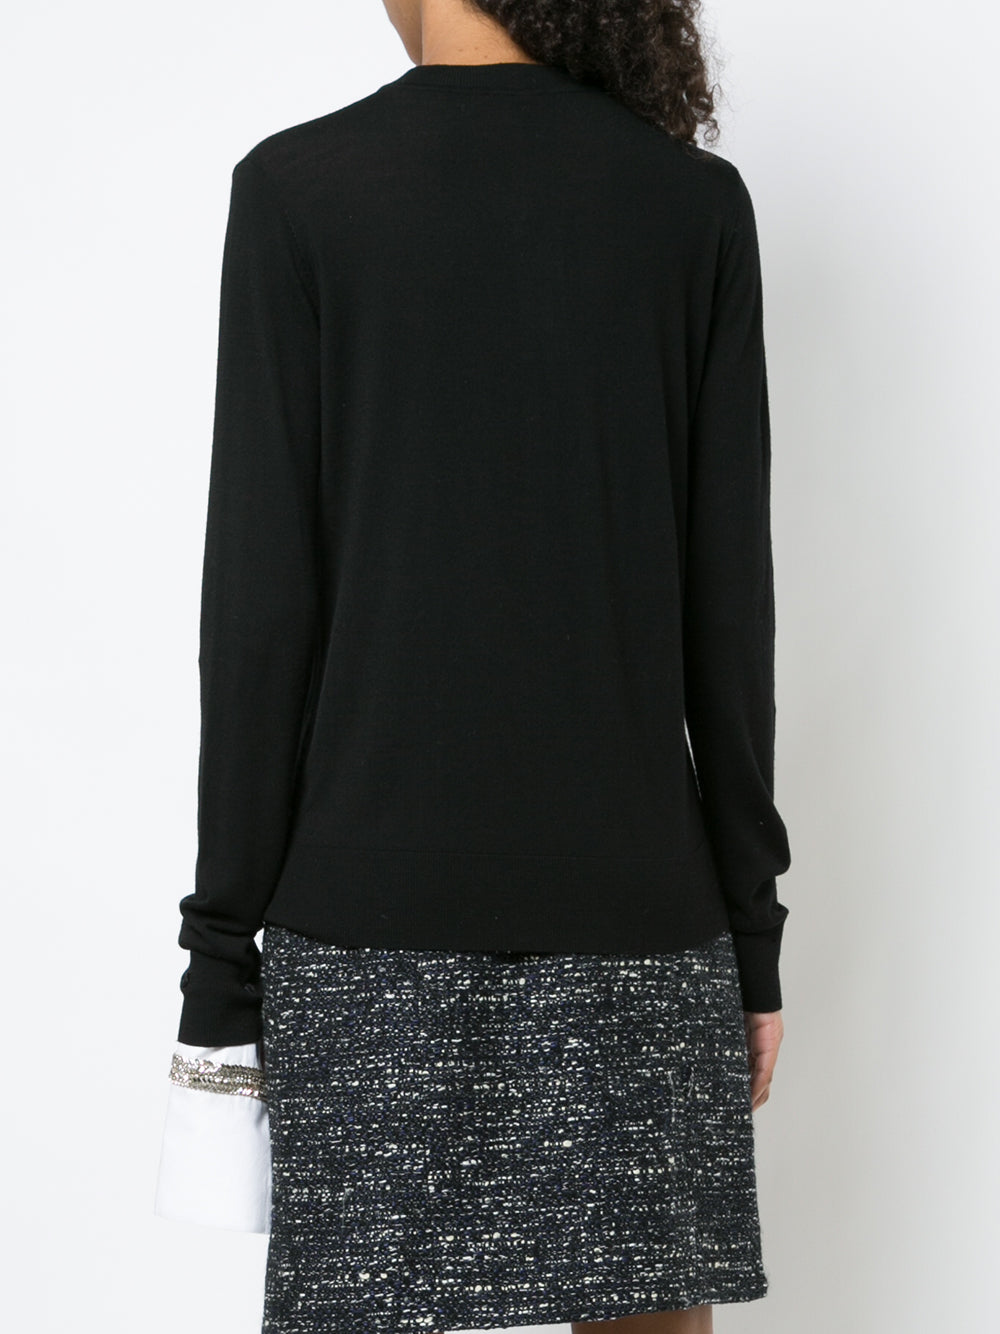 MERINO WOOL CREWNECK SWEATER WITH DETACHABLE EMBROIDERED CUFF